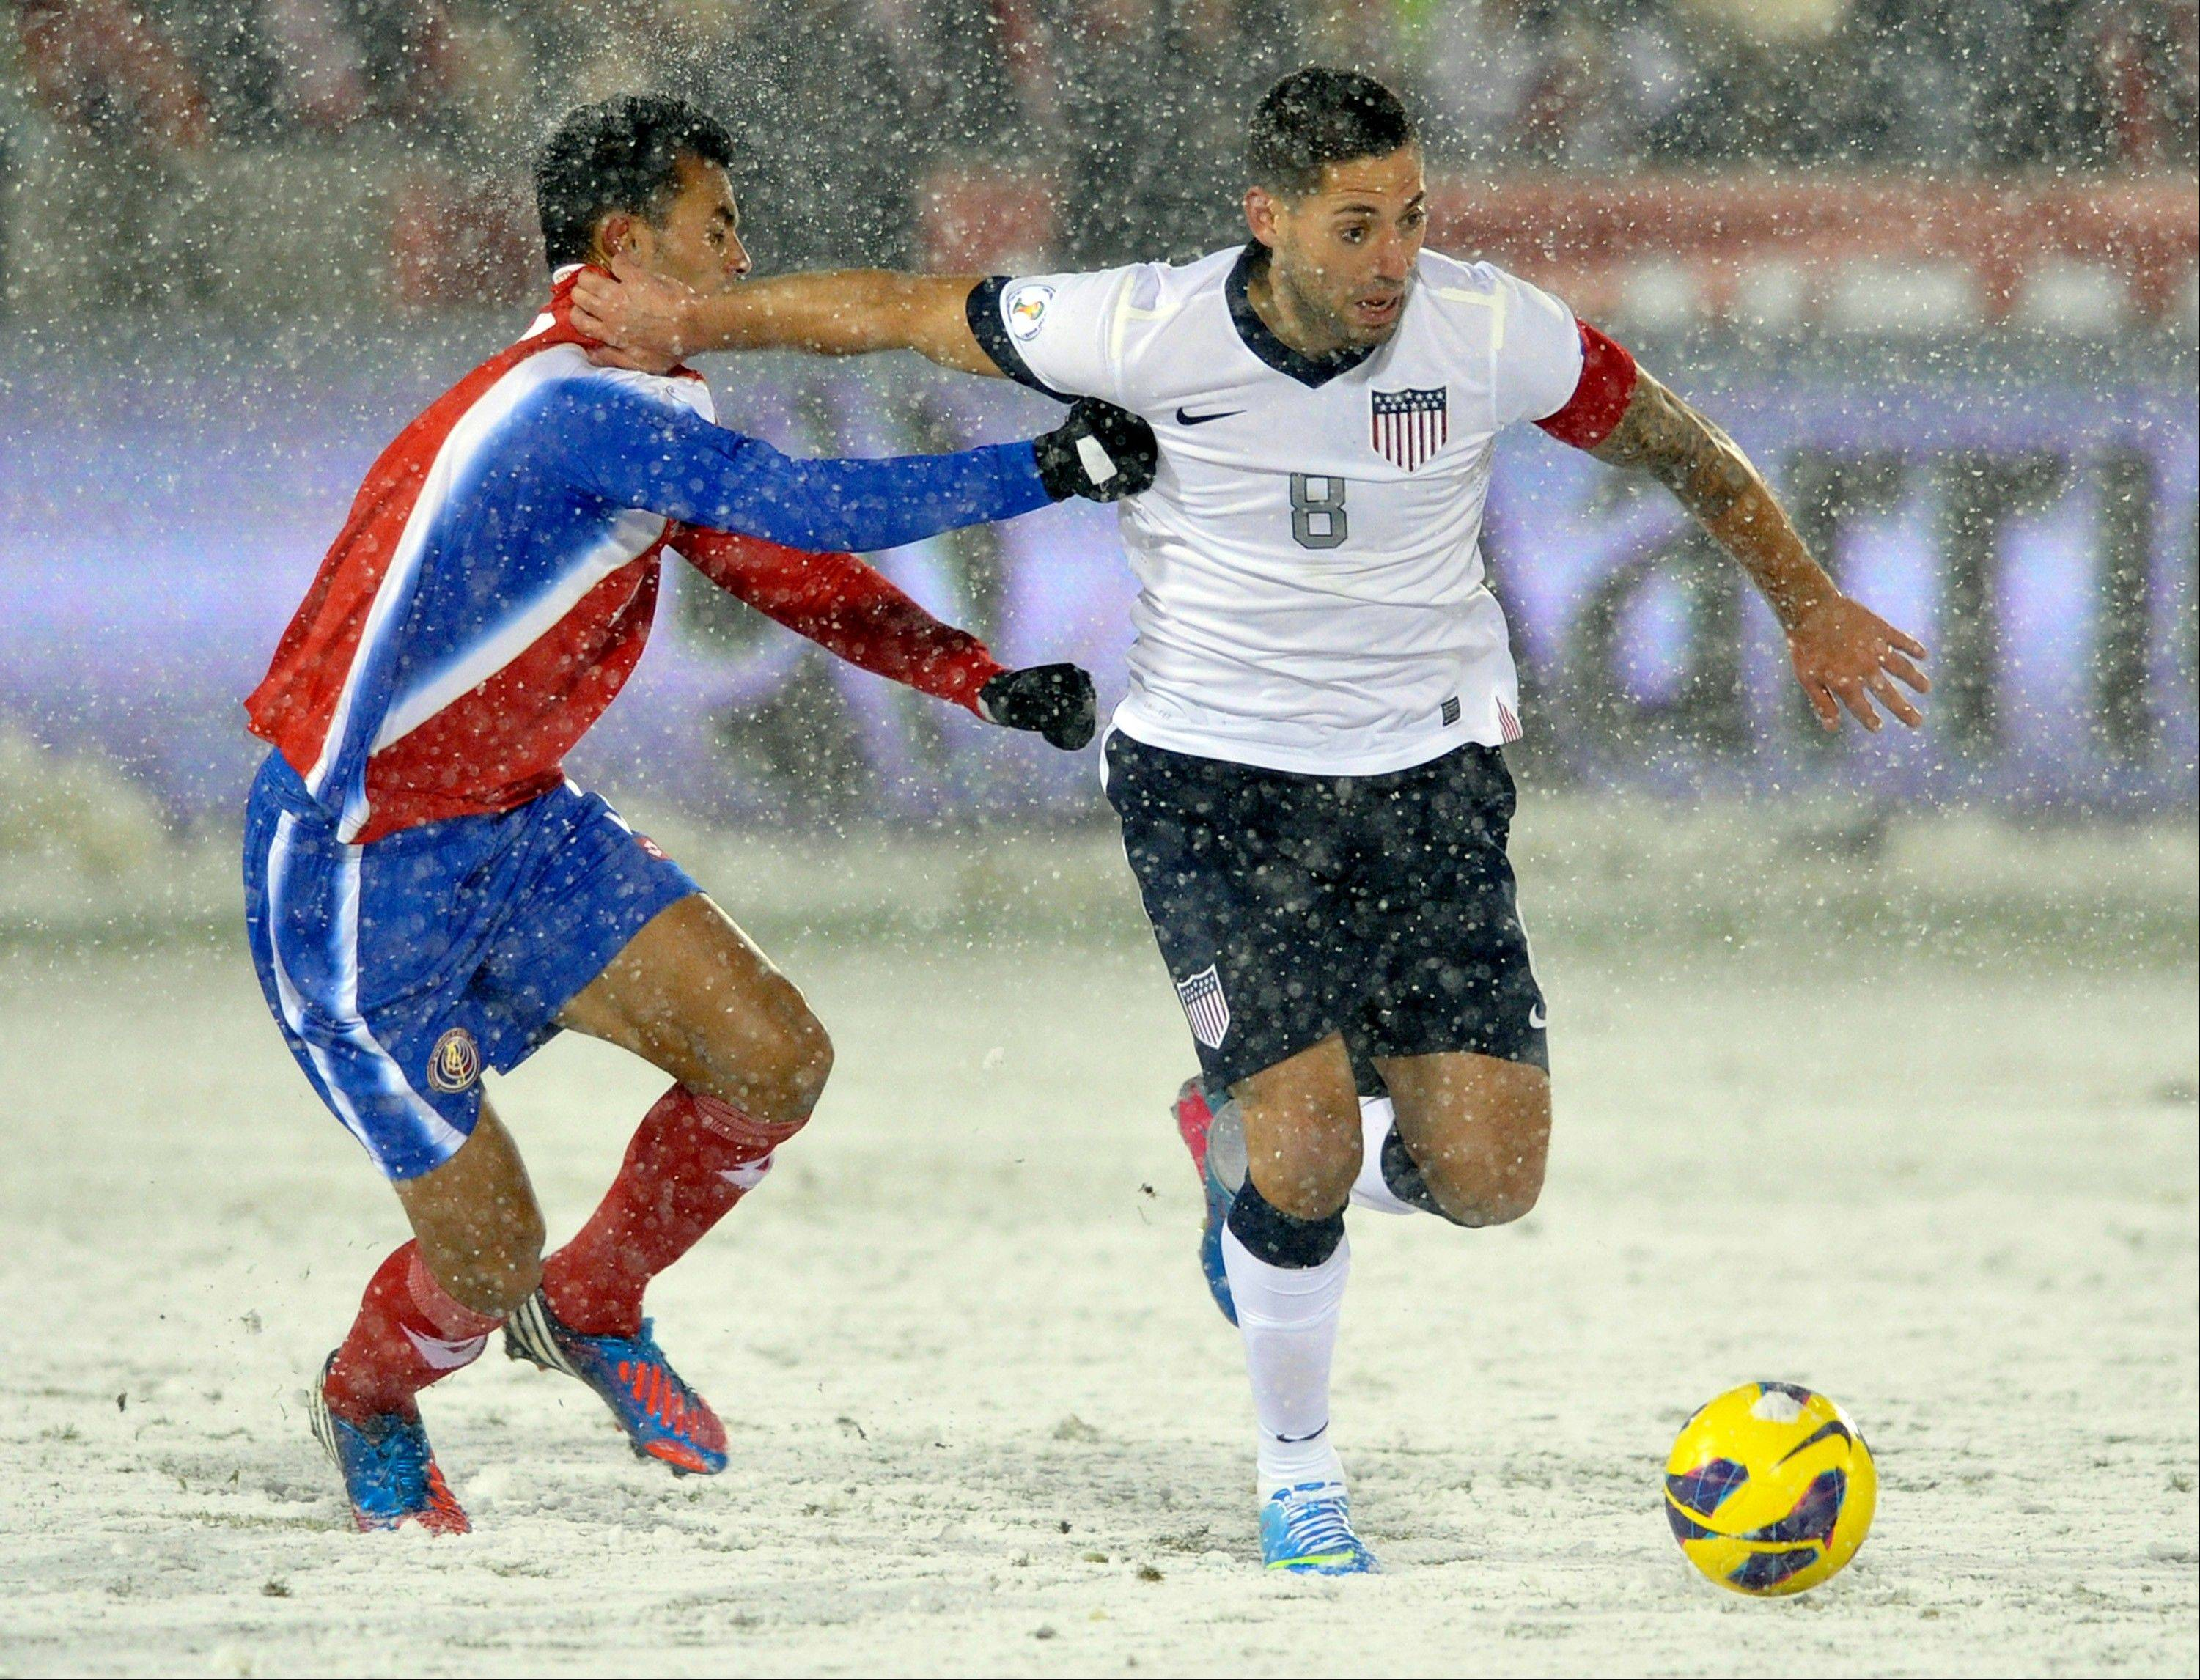 Costa Rica defender Giancarlo Gonzalez, left, pulls the jersey of United States forward Clint Dempsey (8) during the first half of a World Cup qualifier soccer match in Commerce City, Colo., Friday, March 22, 2013.